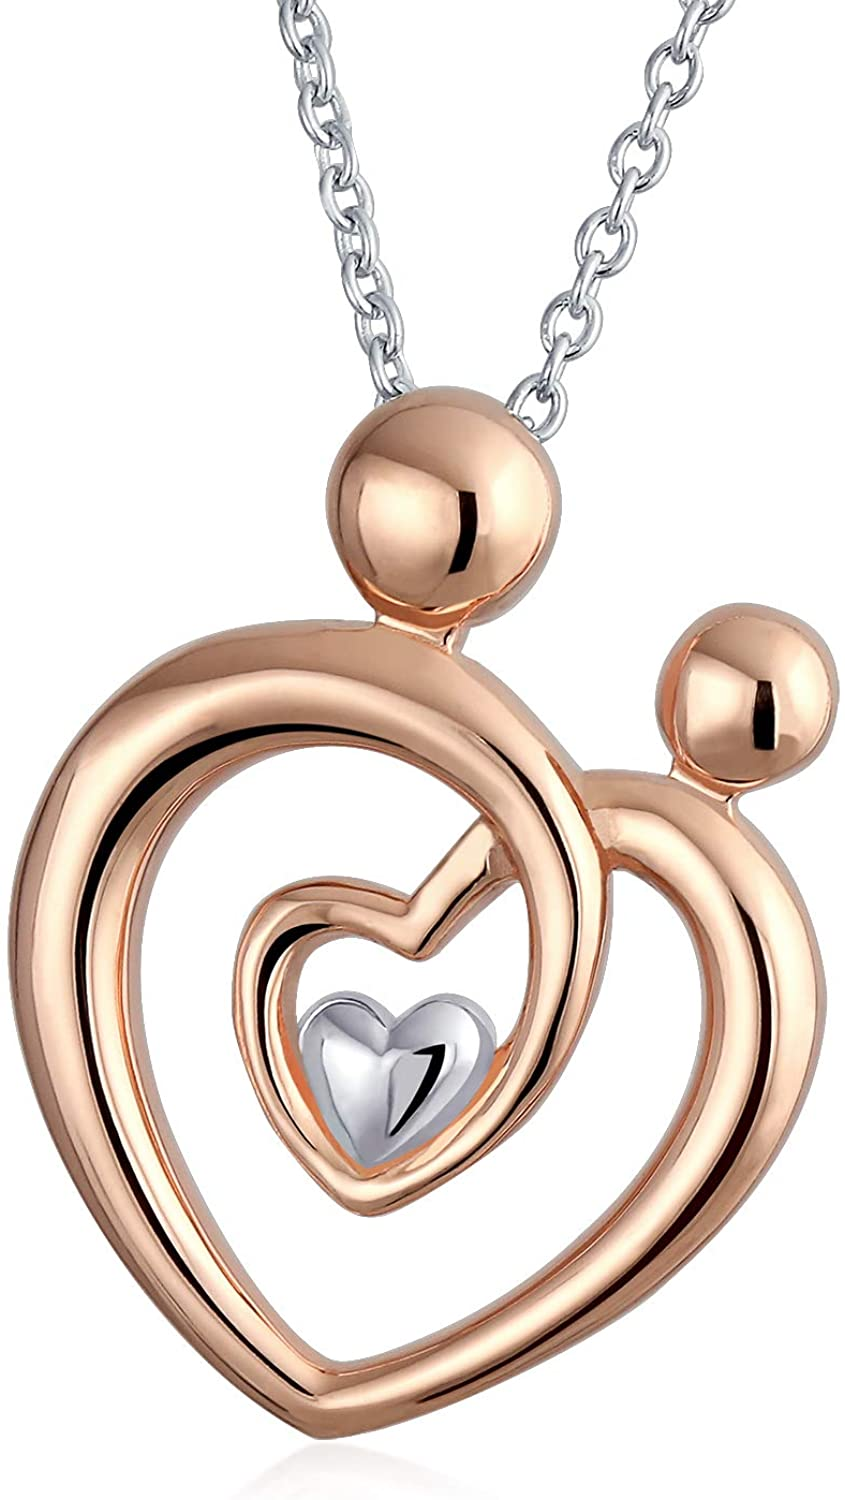 Mother Loving Family Father Heart Pendant Necklace For Women Rose Gold Plated 925 Sterling Silver